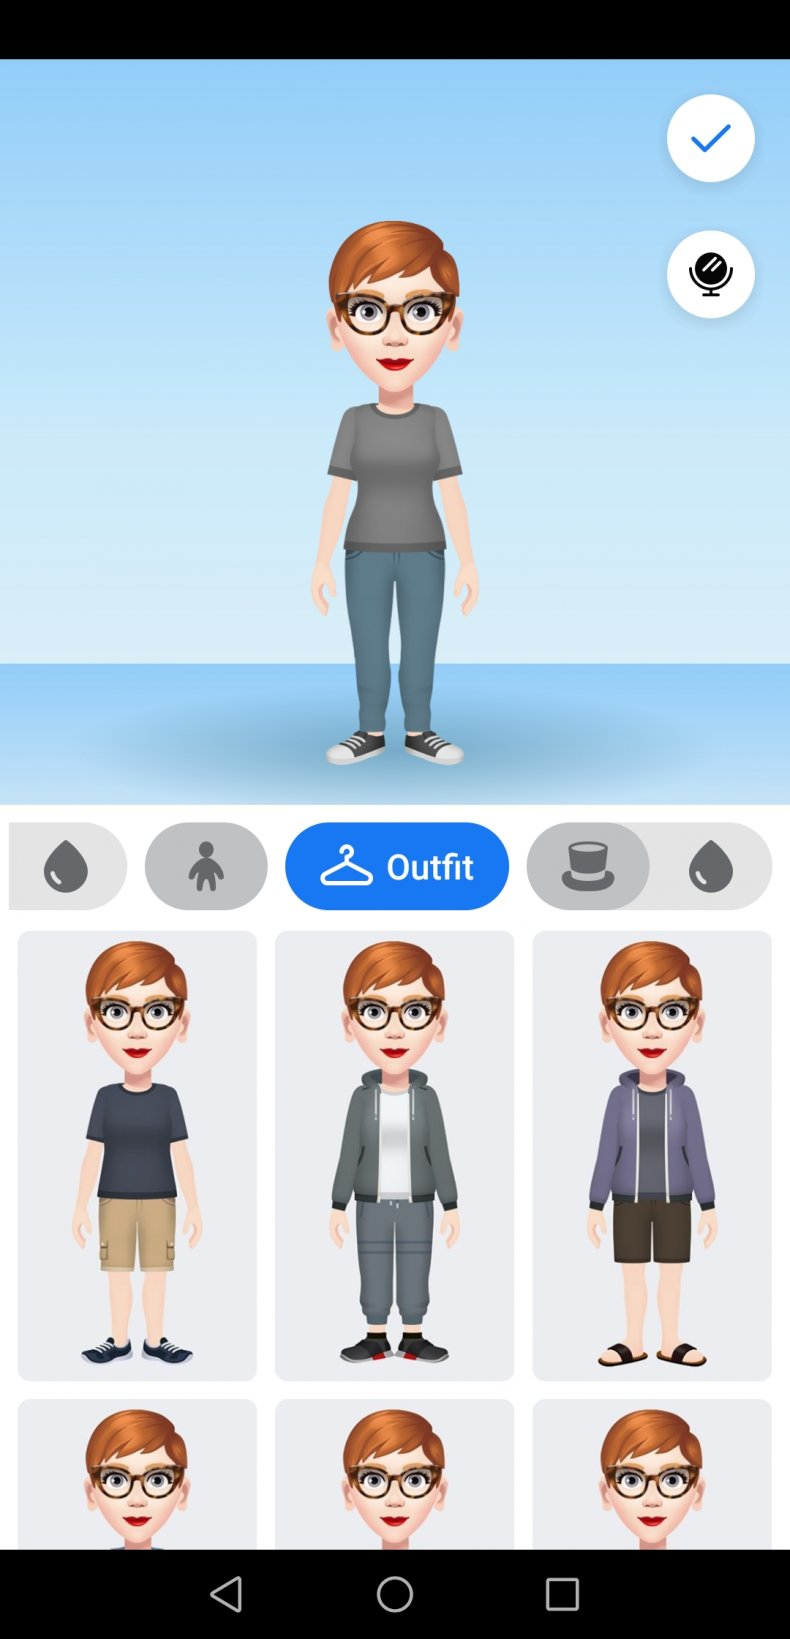 Facebook Avatar Outfit